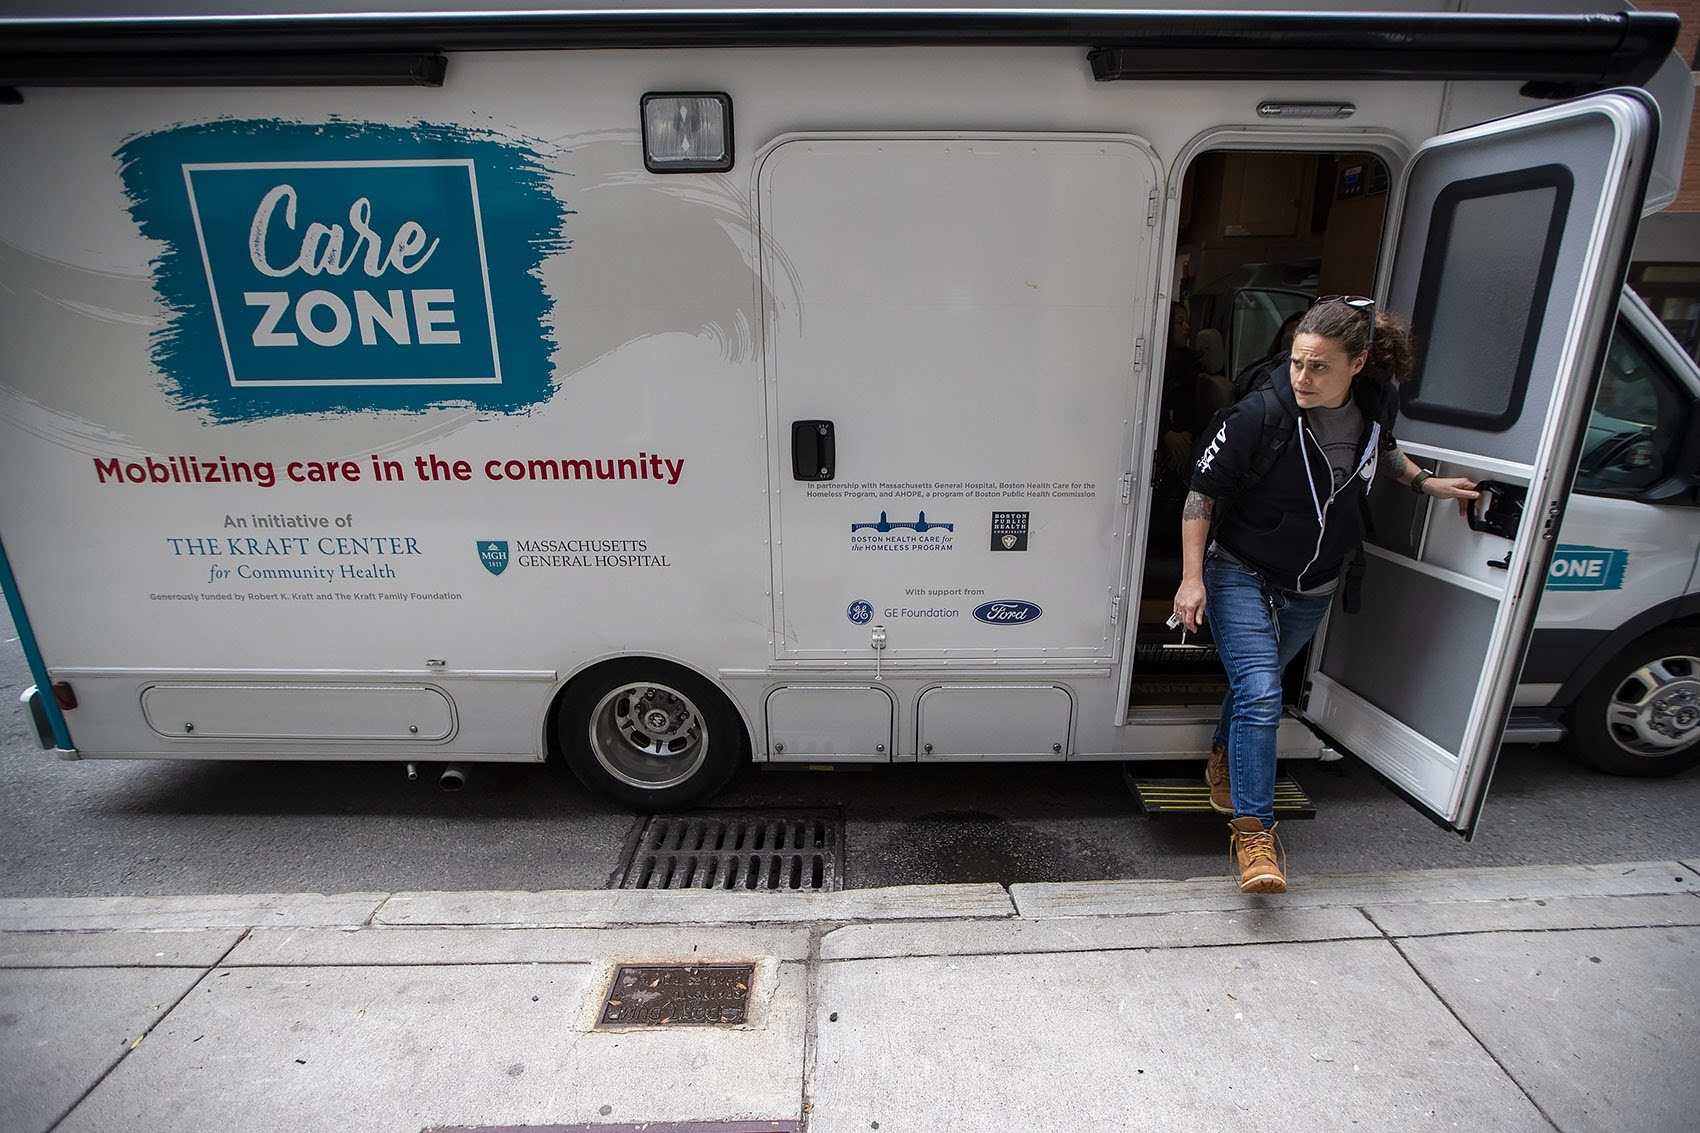 Sarah Mackin exits the Care Zone van after it parks on Haverhill St. near by North Station. They will mobilize and walk around the area to look for opioid users who need assistance. Photo by Jesse Costa for WBUR